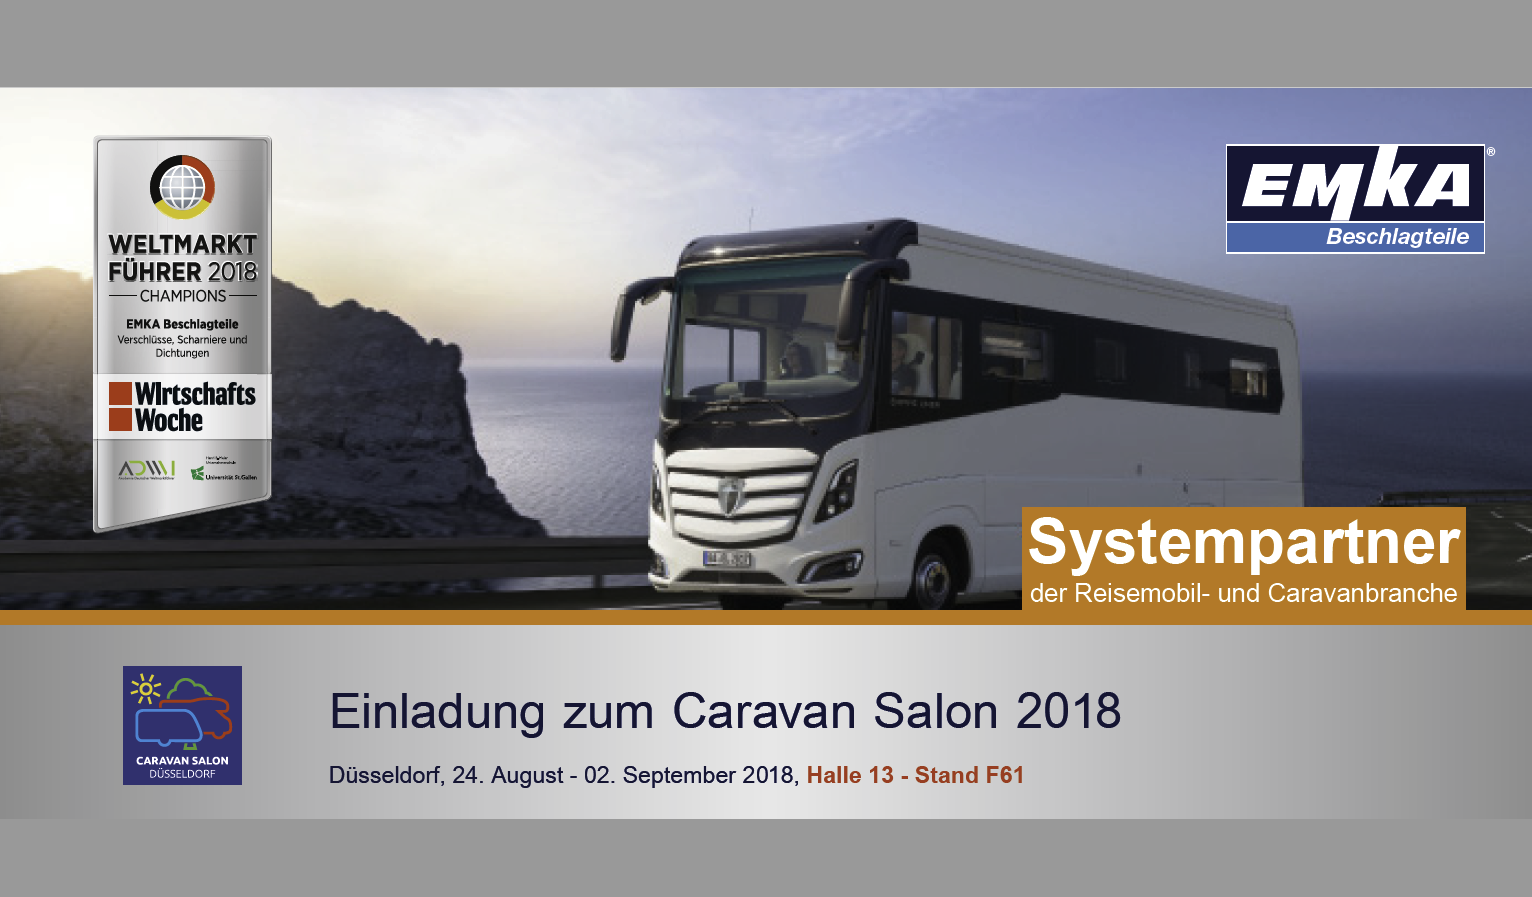 EMKA at the CARAVAN Salon 2018